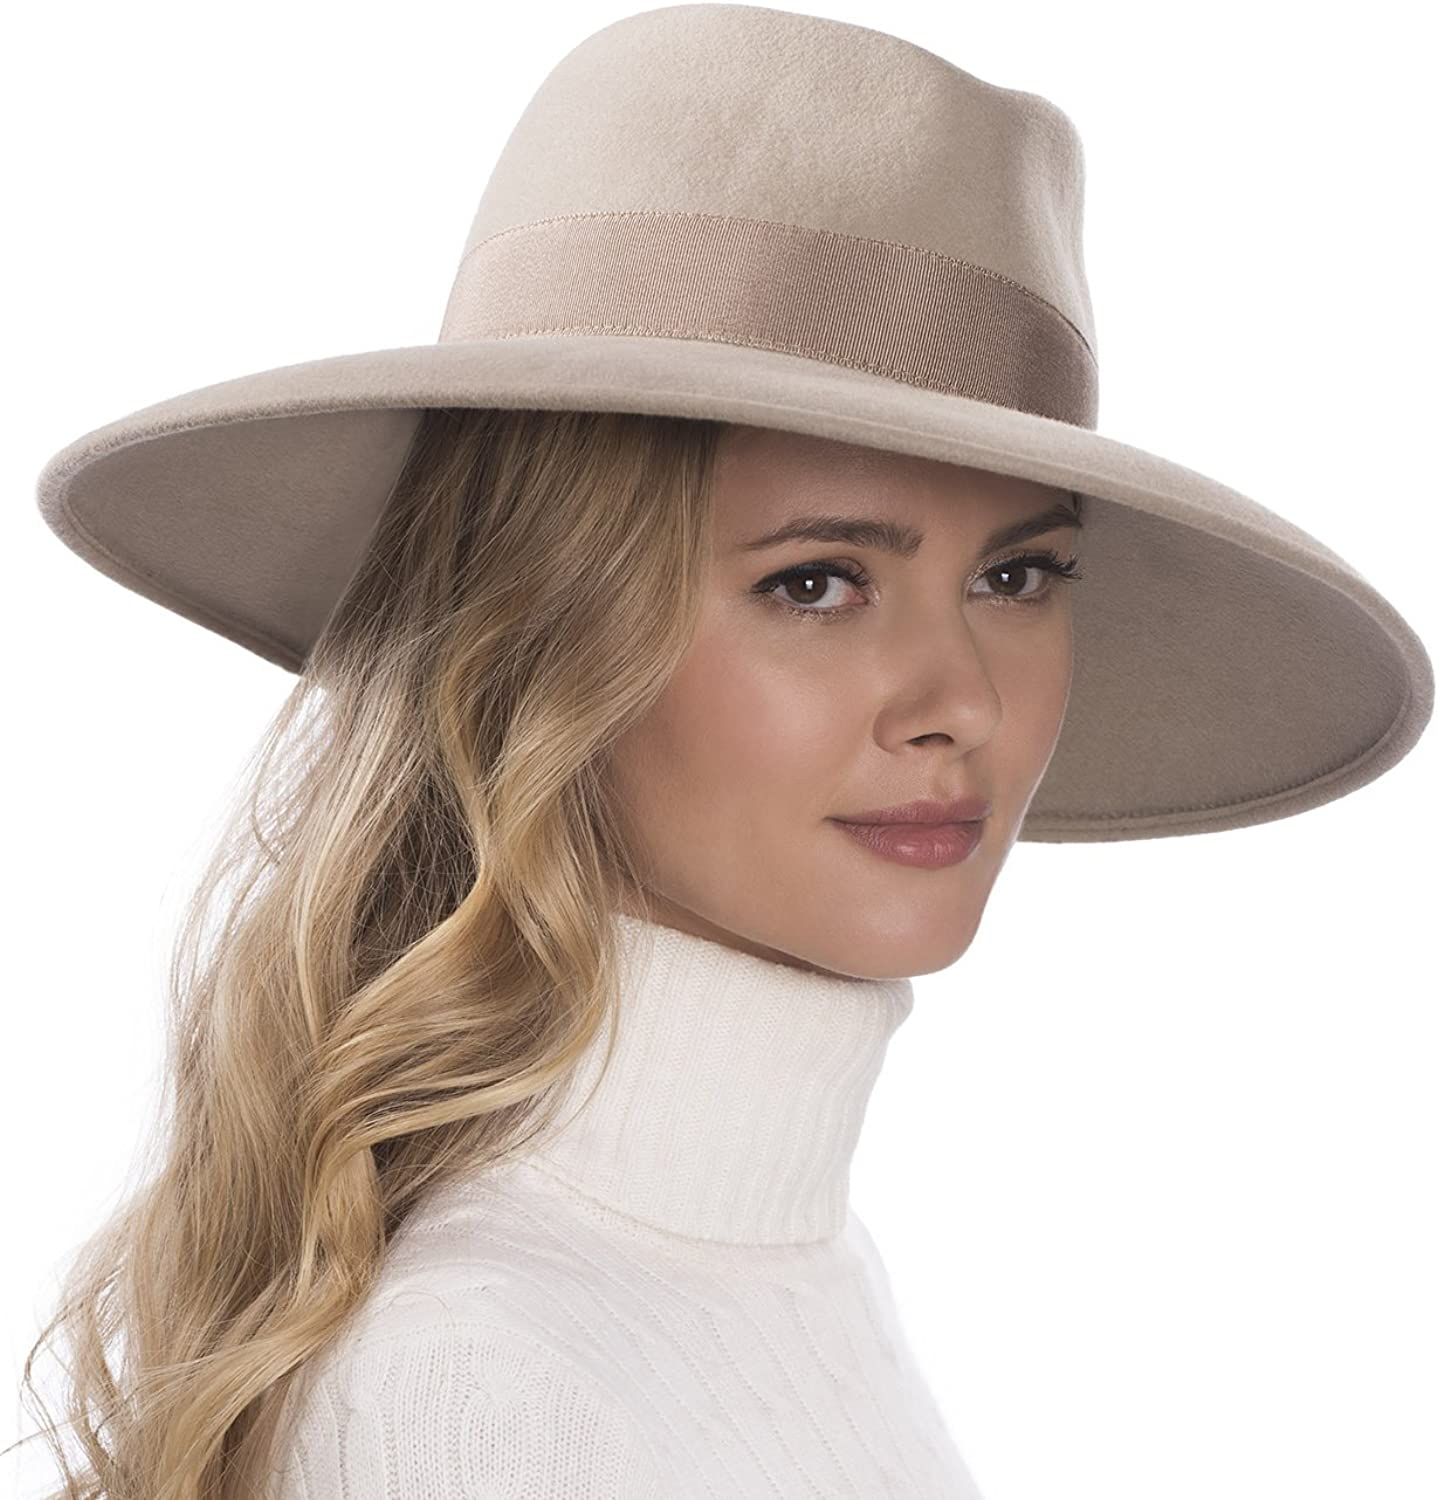 Eric Javits Luxury Fashion Designer Women's Headwear Hat  Camille